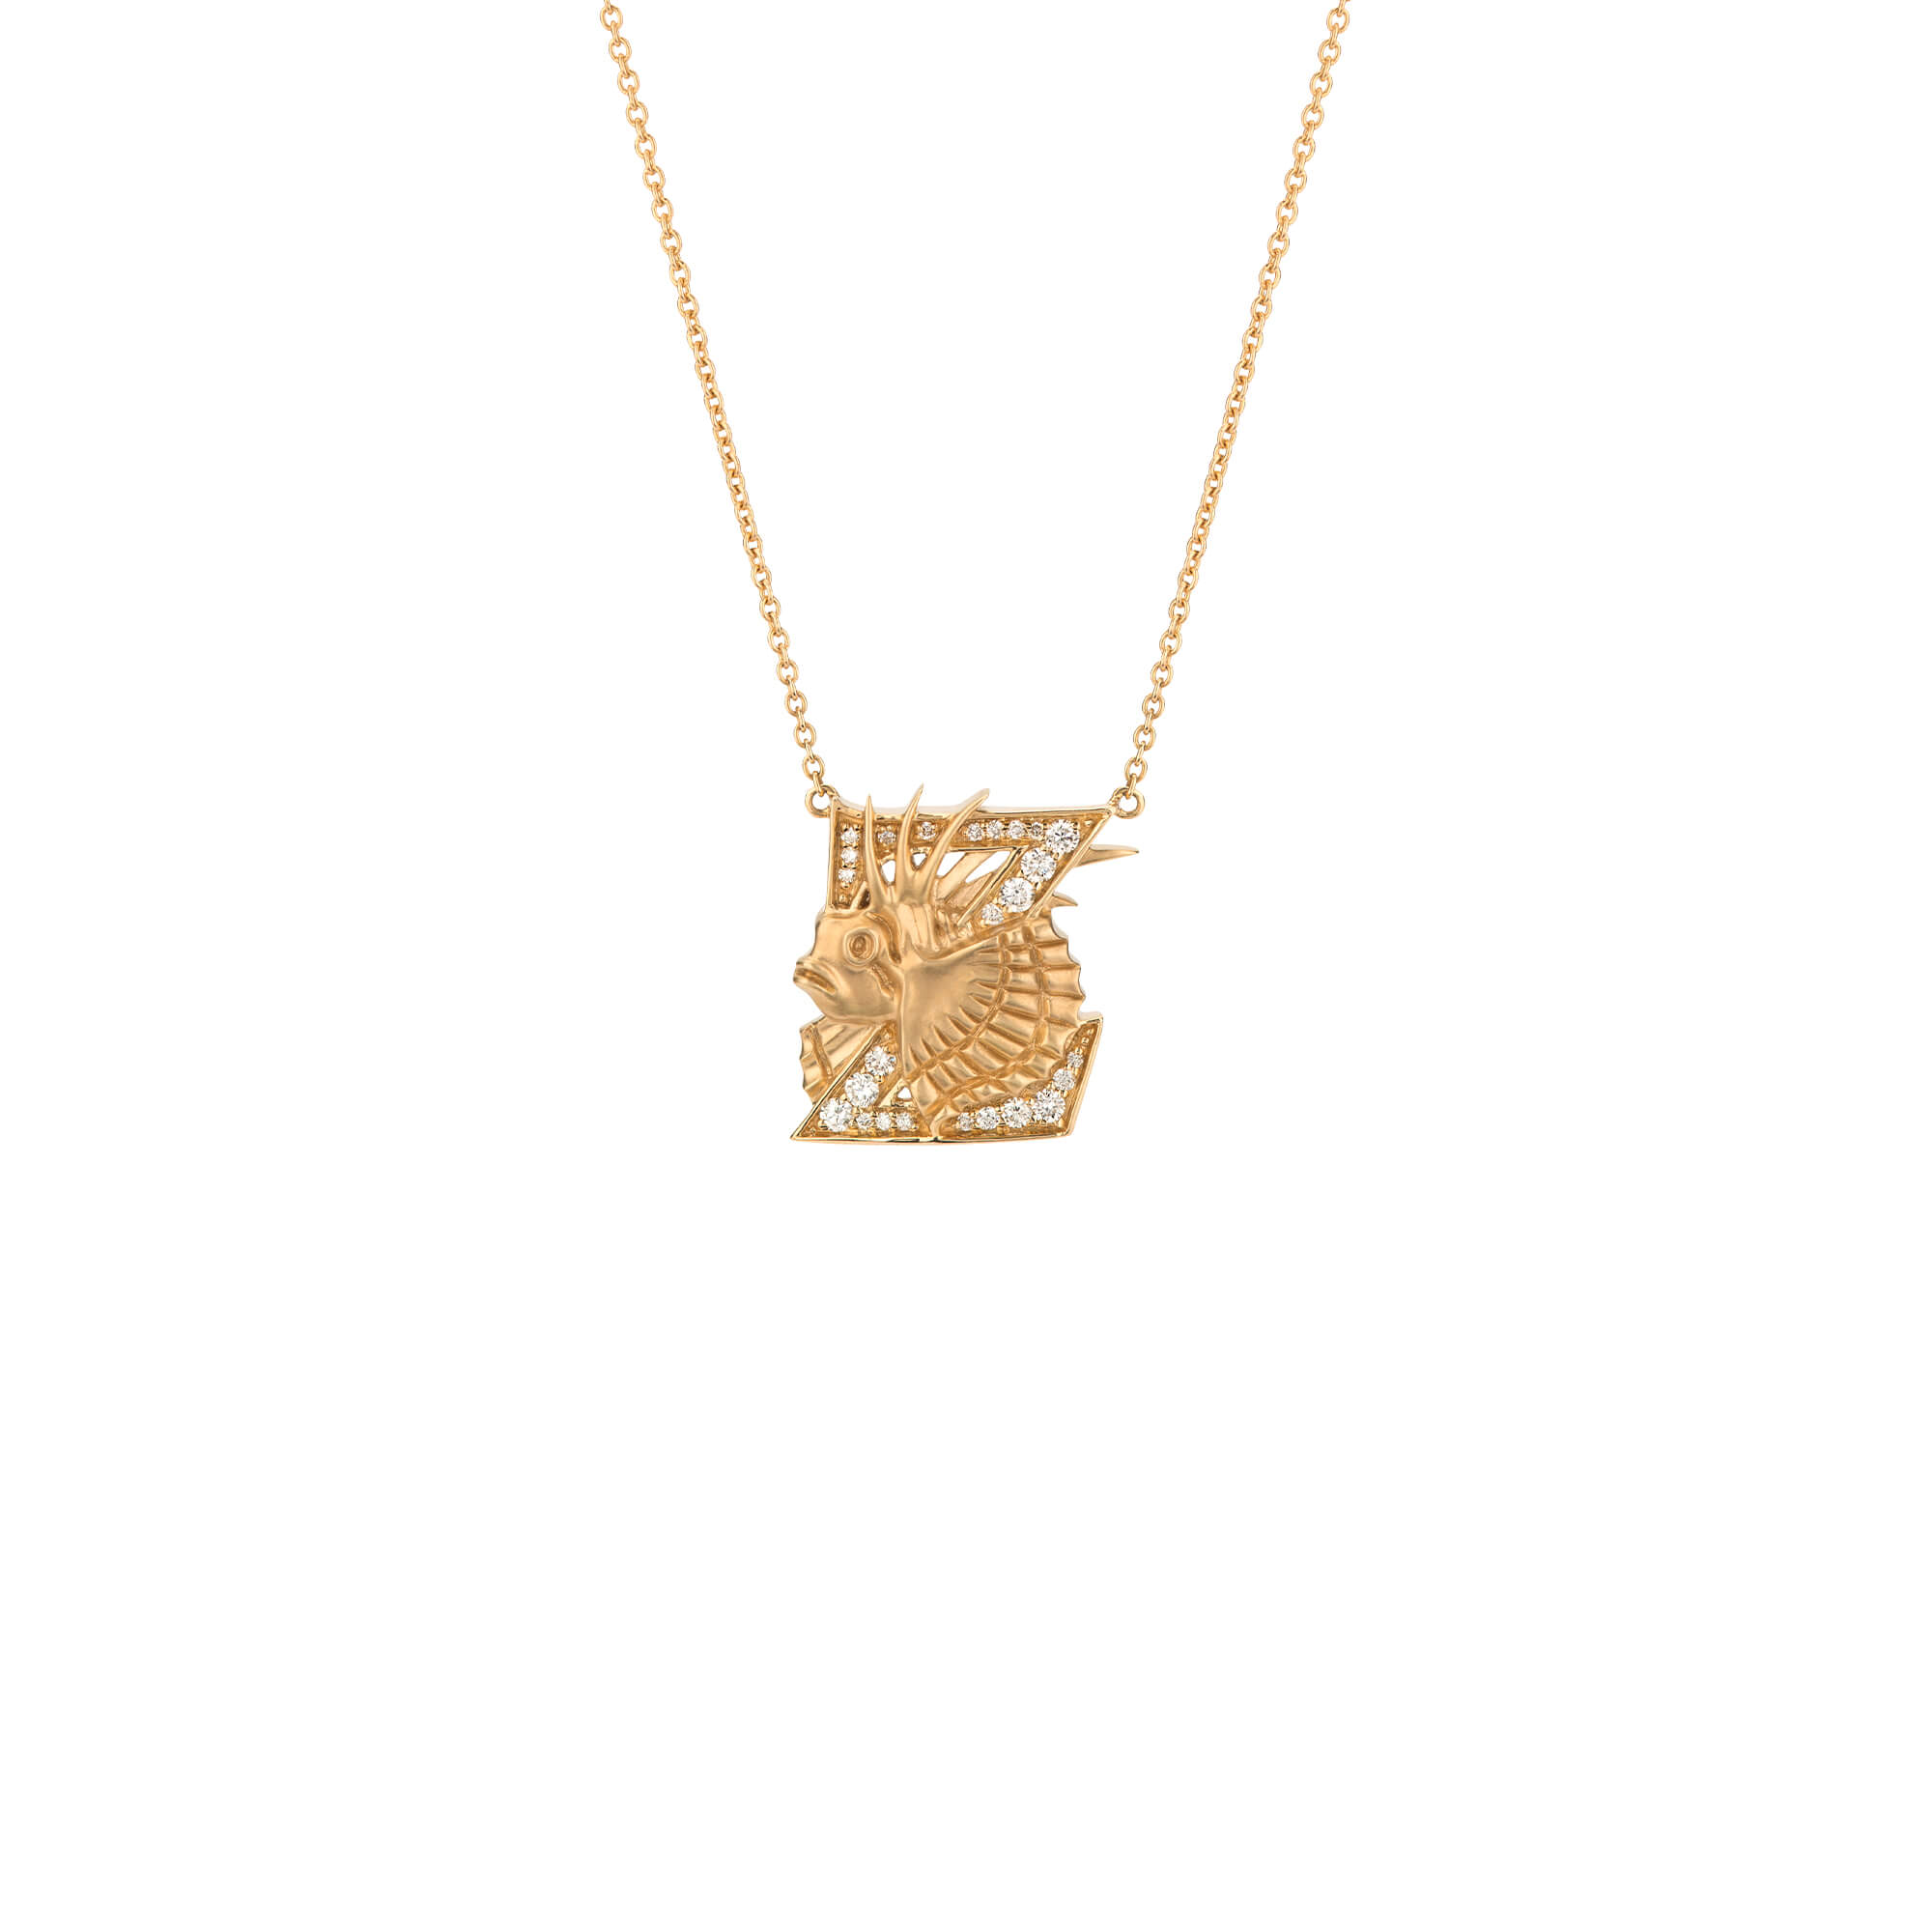 Z is for Zebra Turkey Fish Gold Necklace | Fish Tales